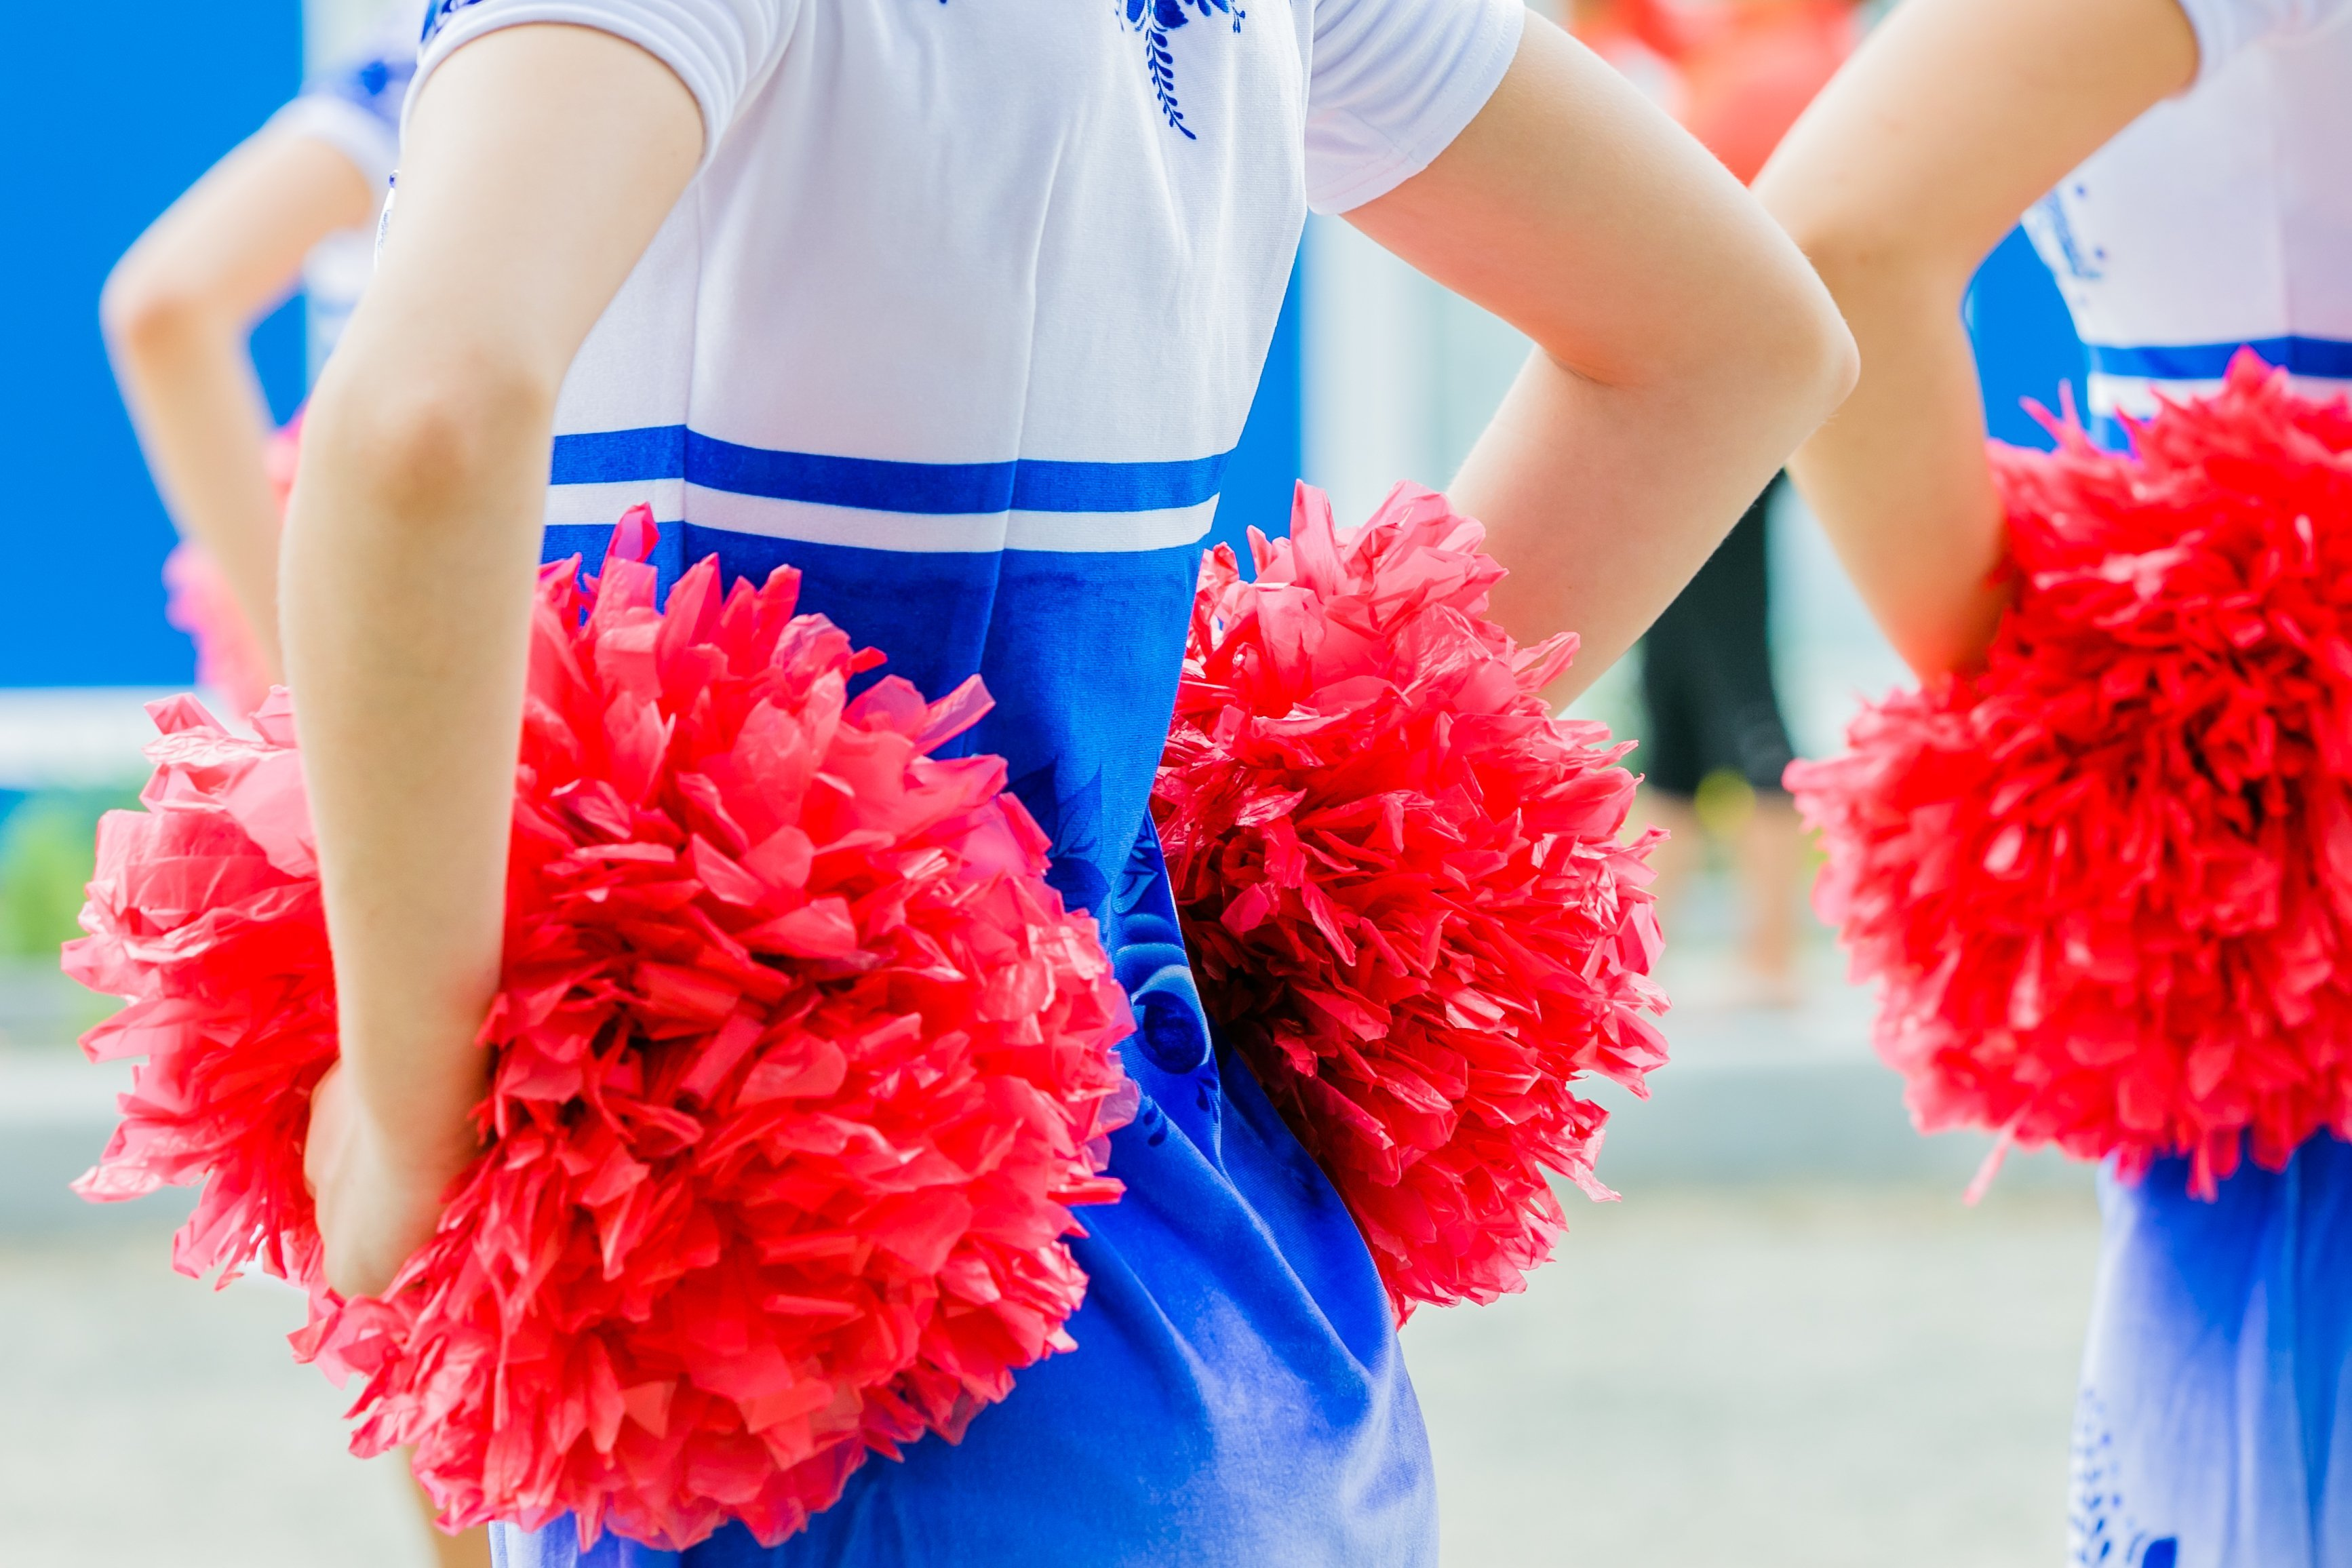 Cheer leader with hands on her hips